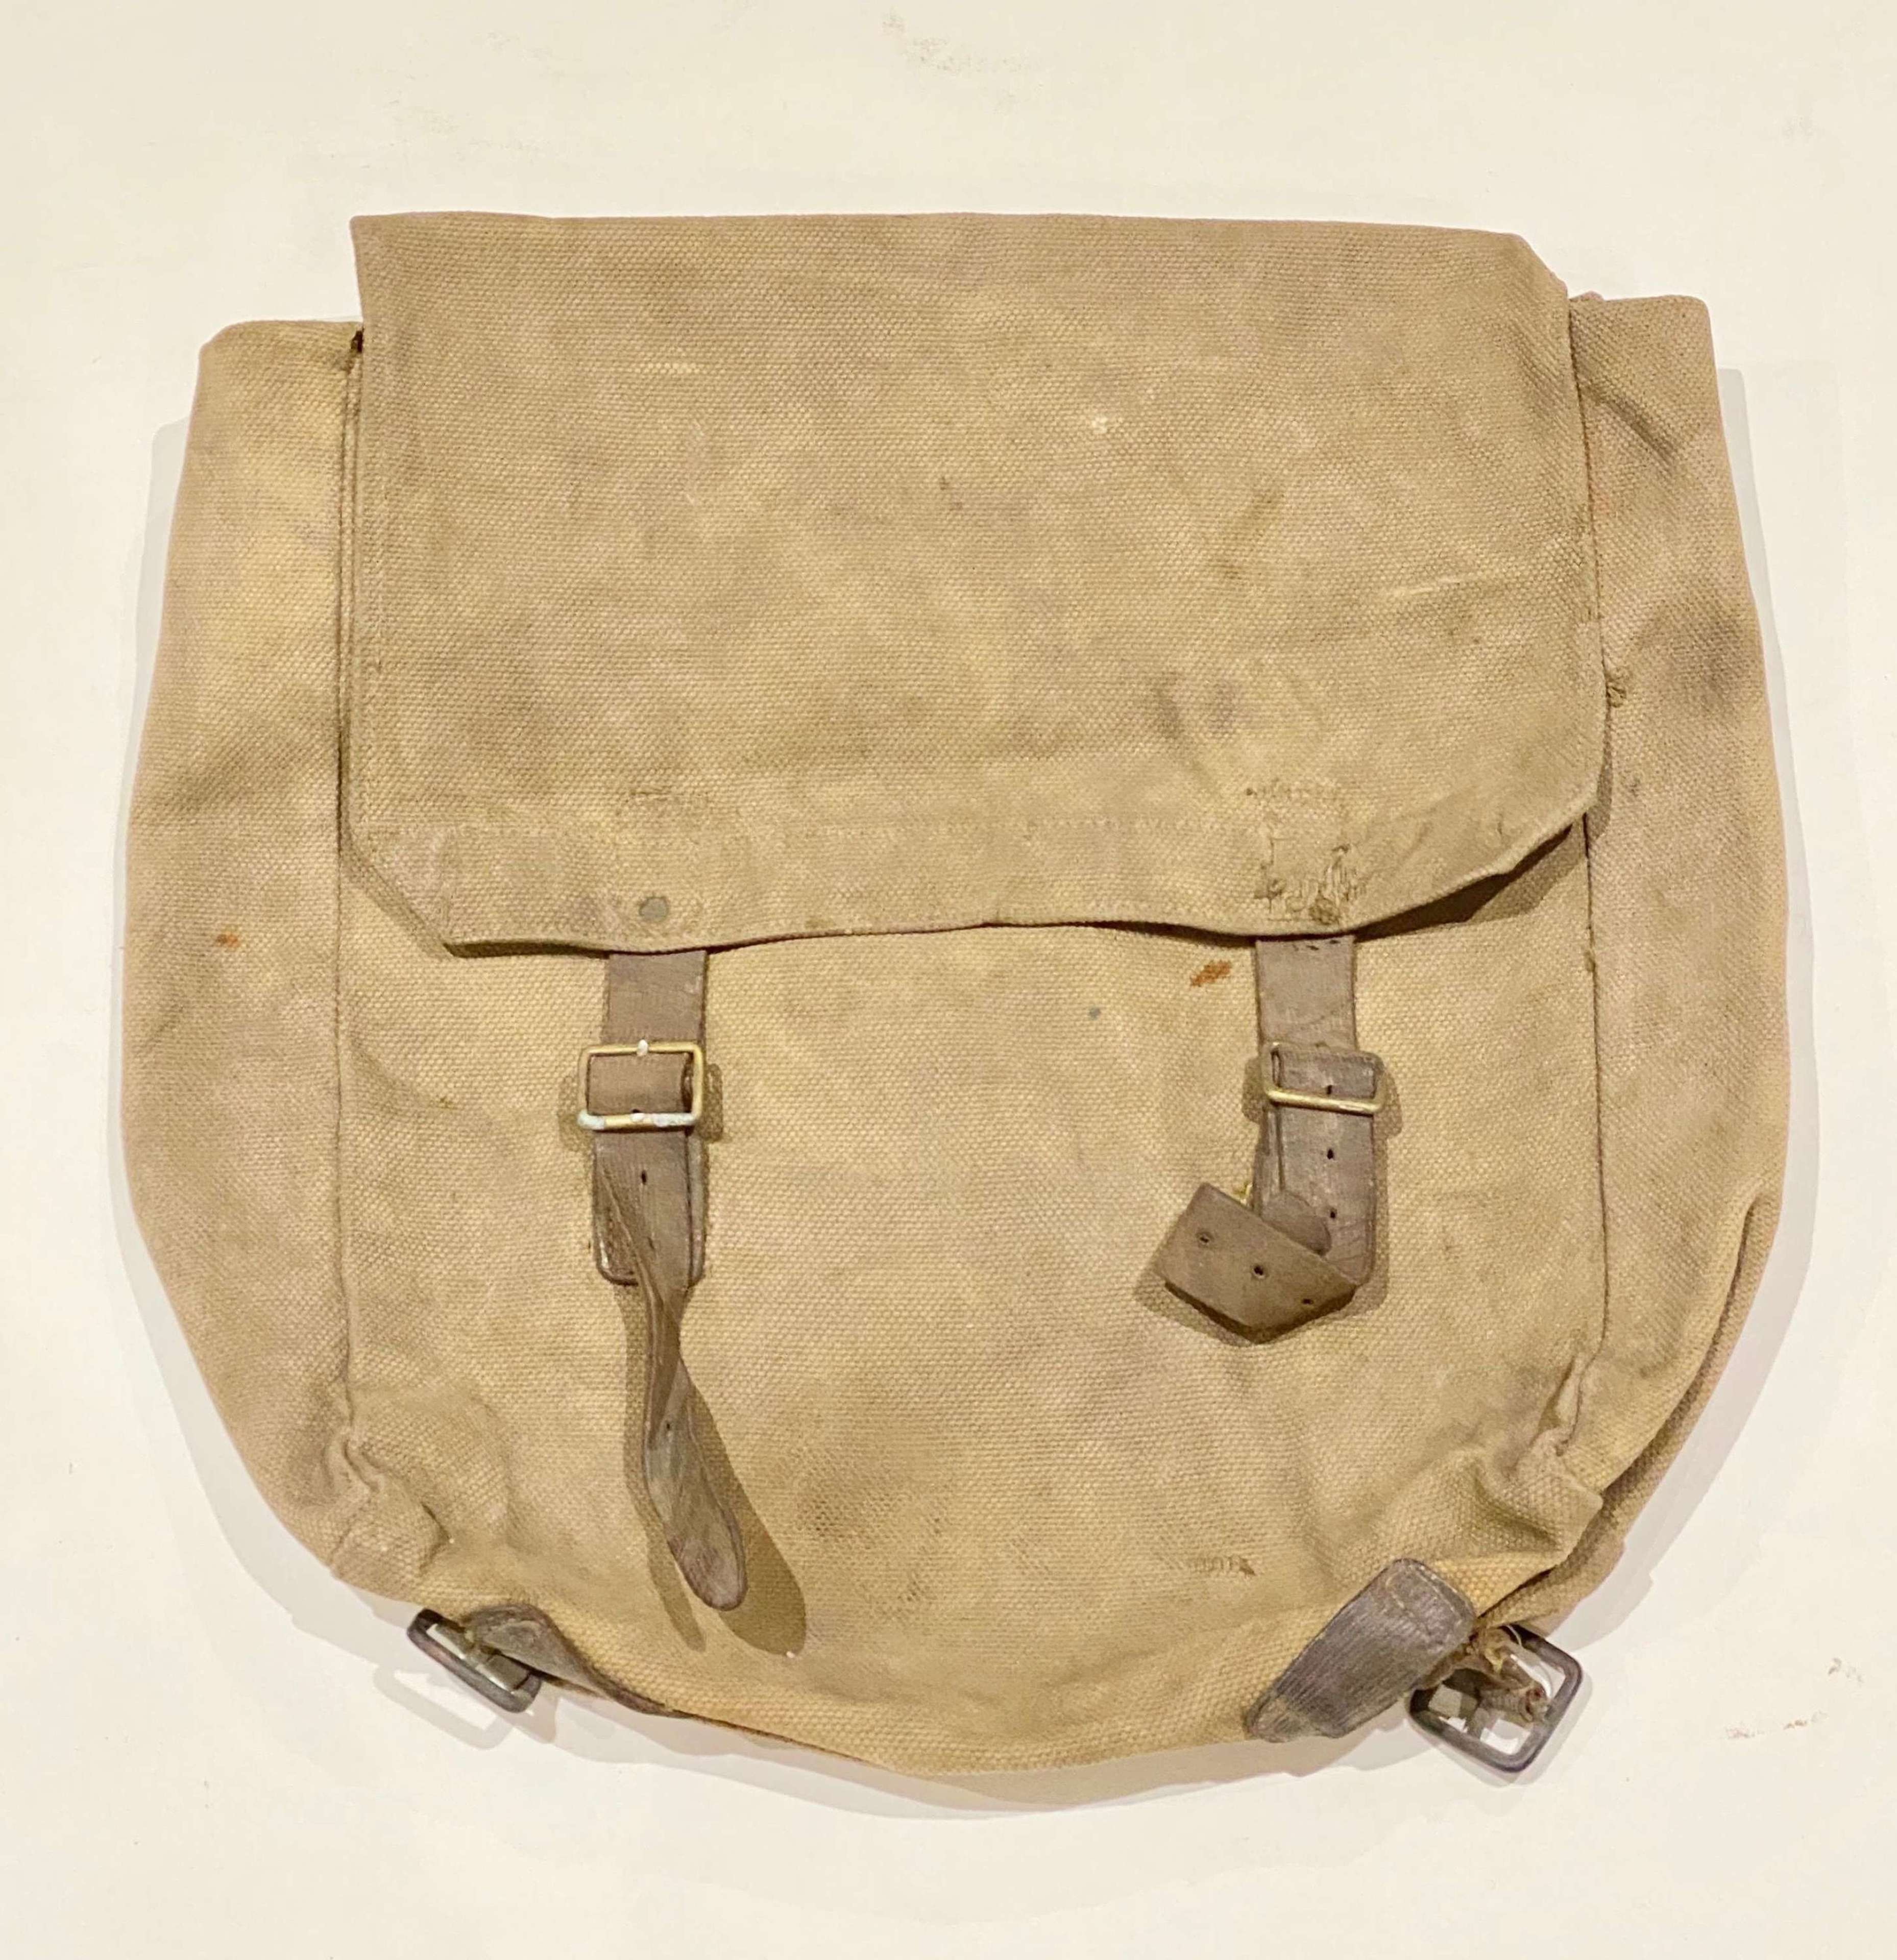 WW1 1914 Pattern Leather Equipment Large Pack.